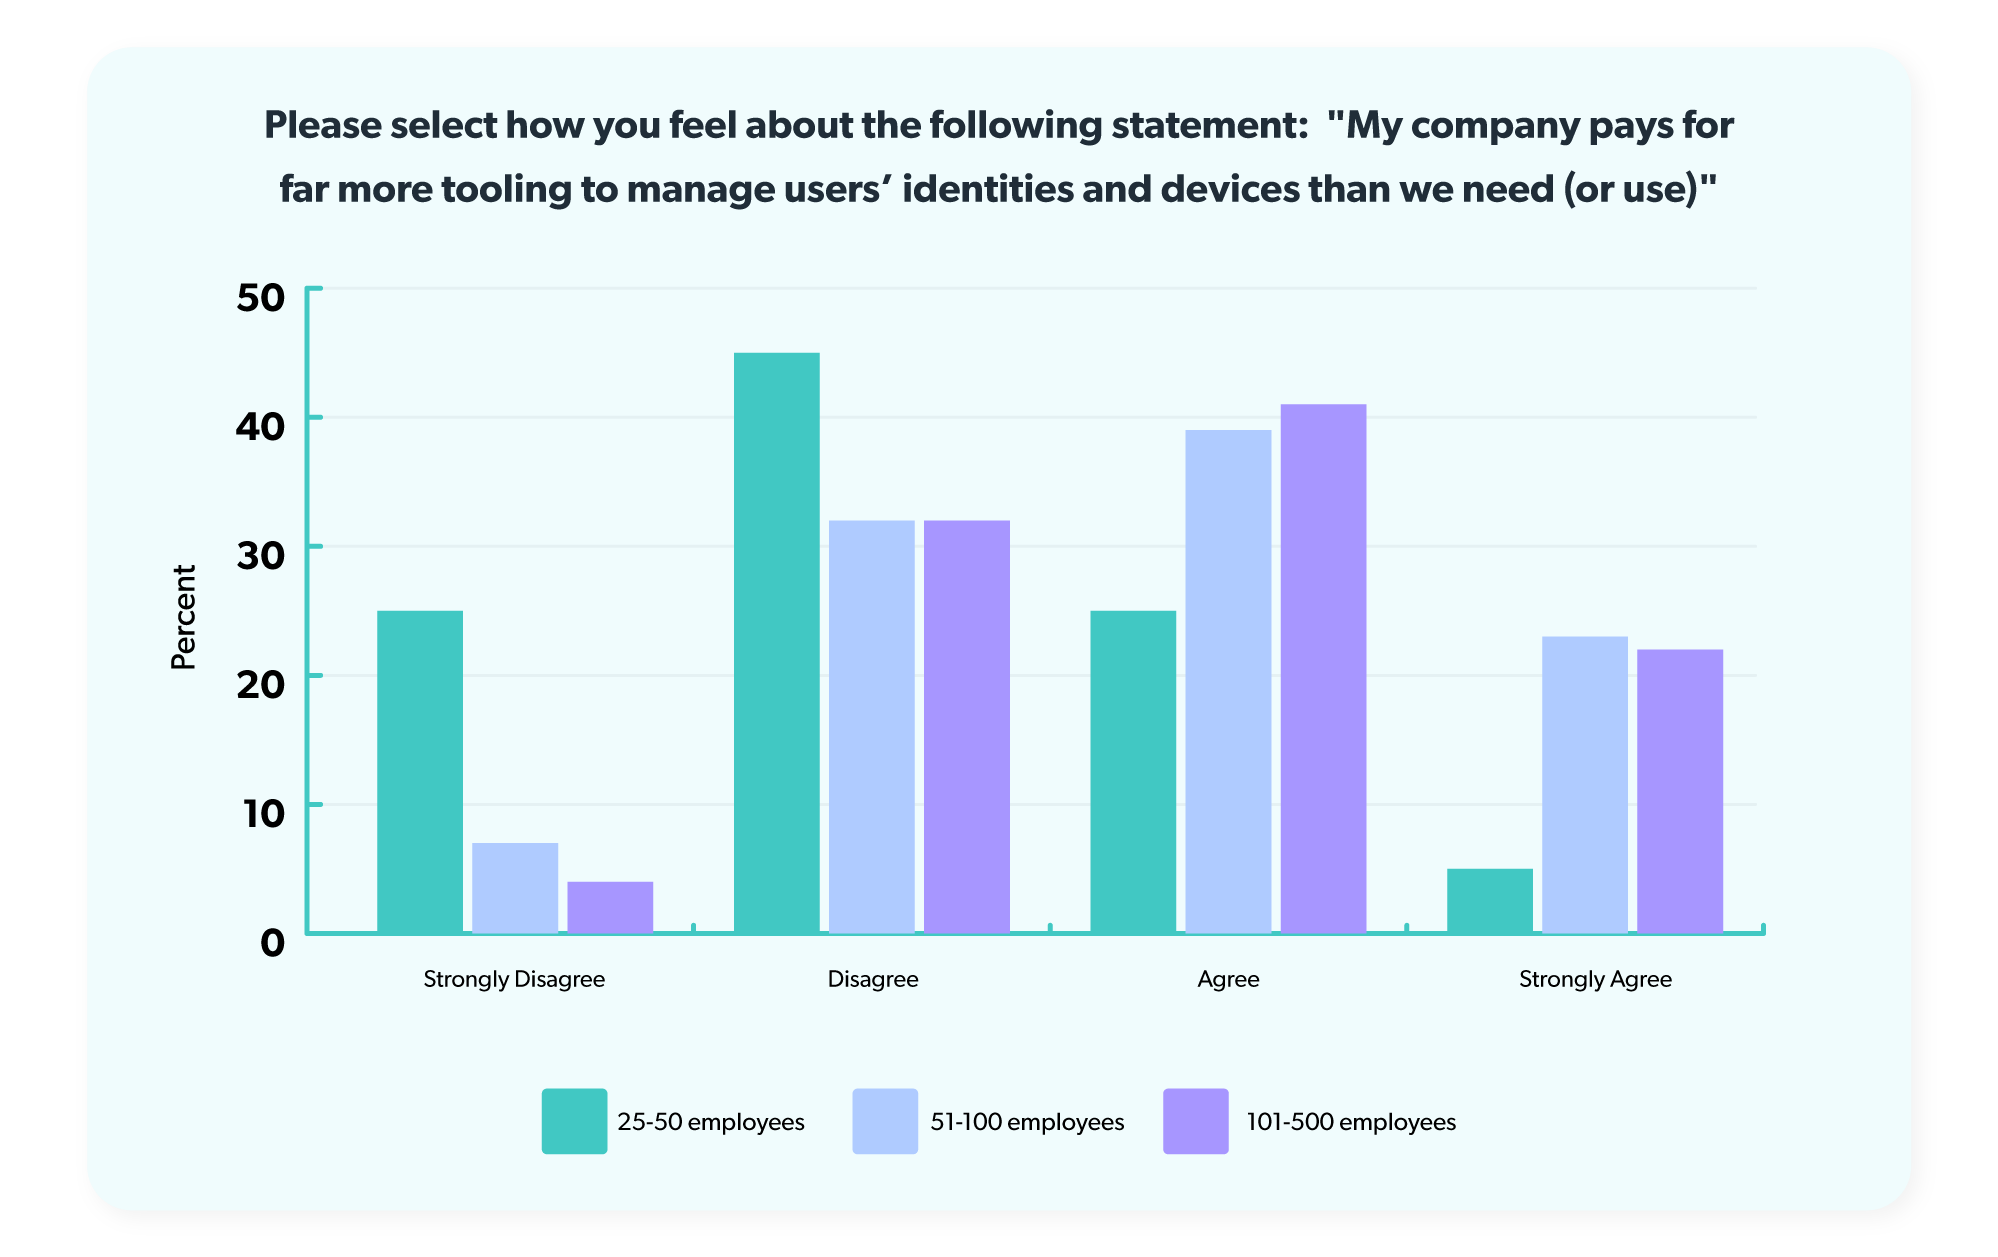 About 62% of respondents working at companies with 51-500 employees felt their companies were overspending on managing users' identities and devices.